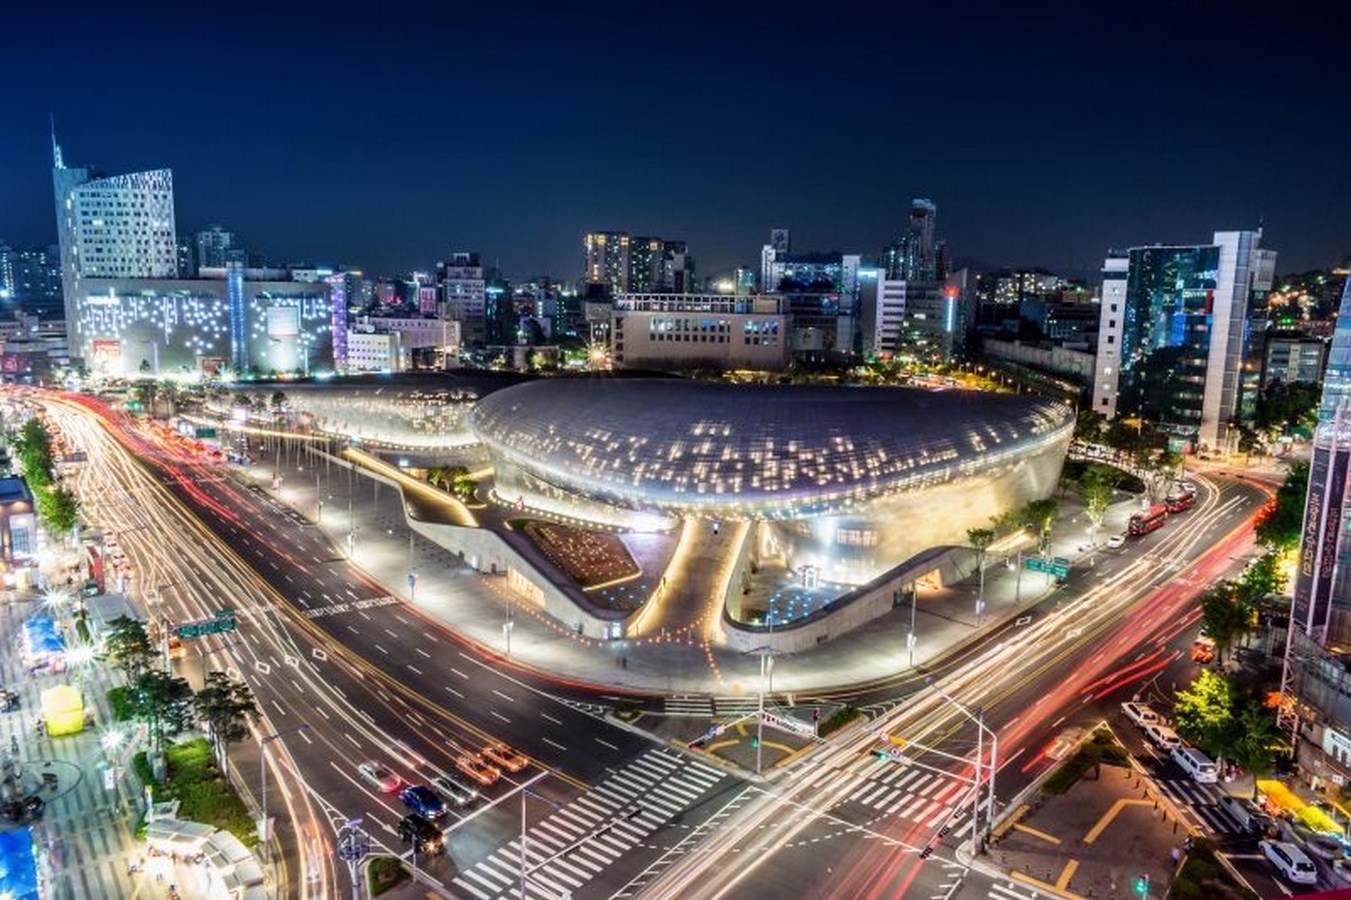 100 Best Architecture Projects of the 21st Century - Dongdaemun Design Plaza, Seoul South Korea designed by Zaha Hadid